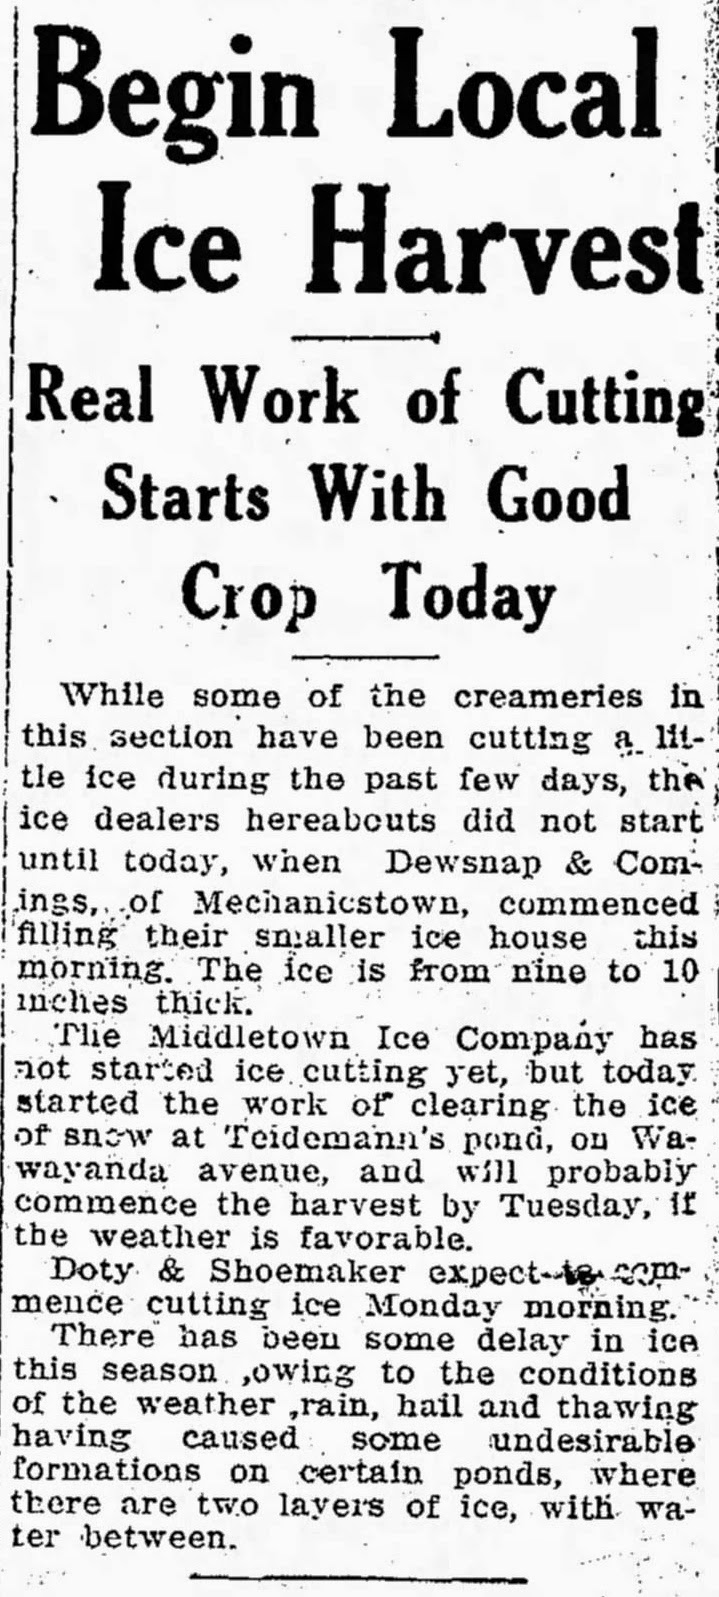 Middletown Times Press, December 31, 1915 edition, Begin Local Ice Harvest